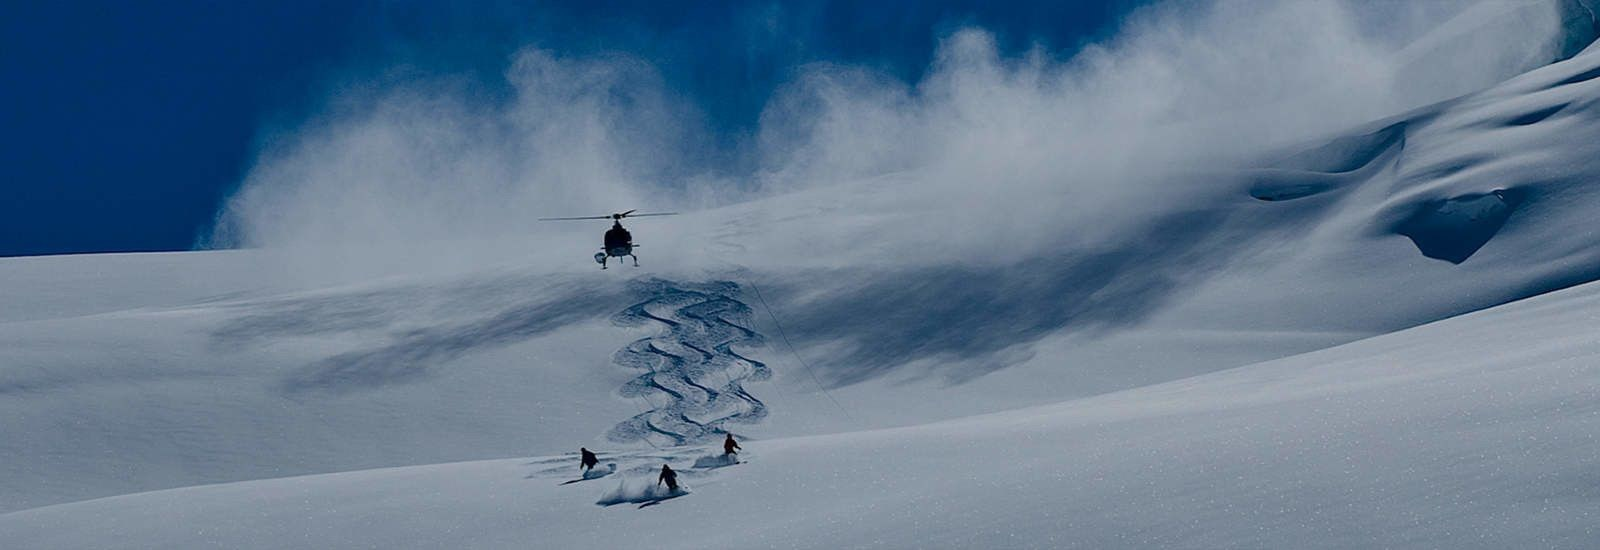 Heli-ski in Kamchatka